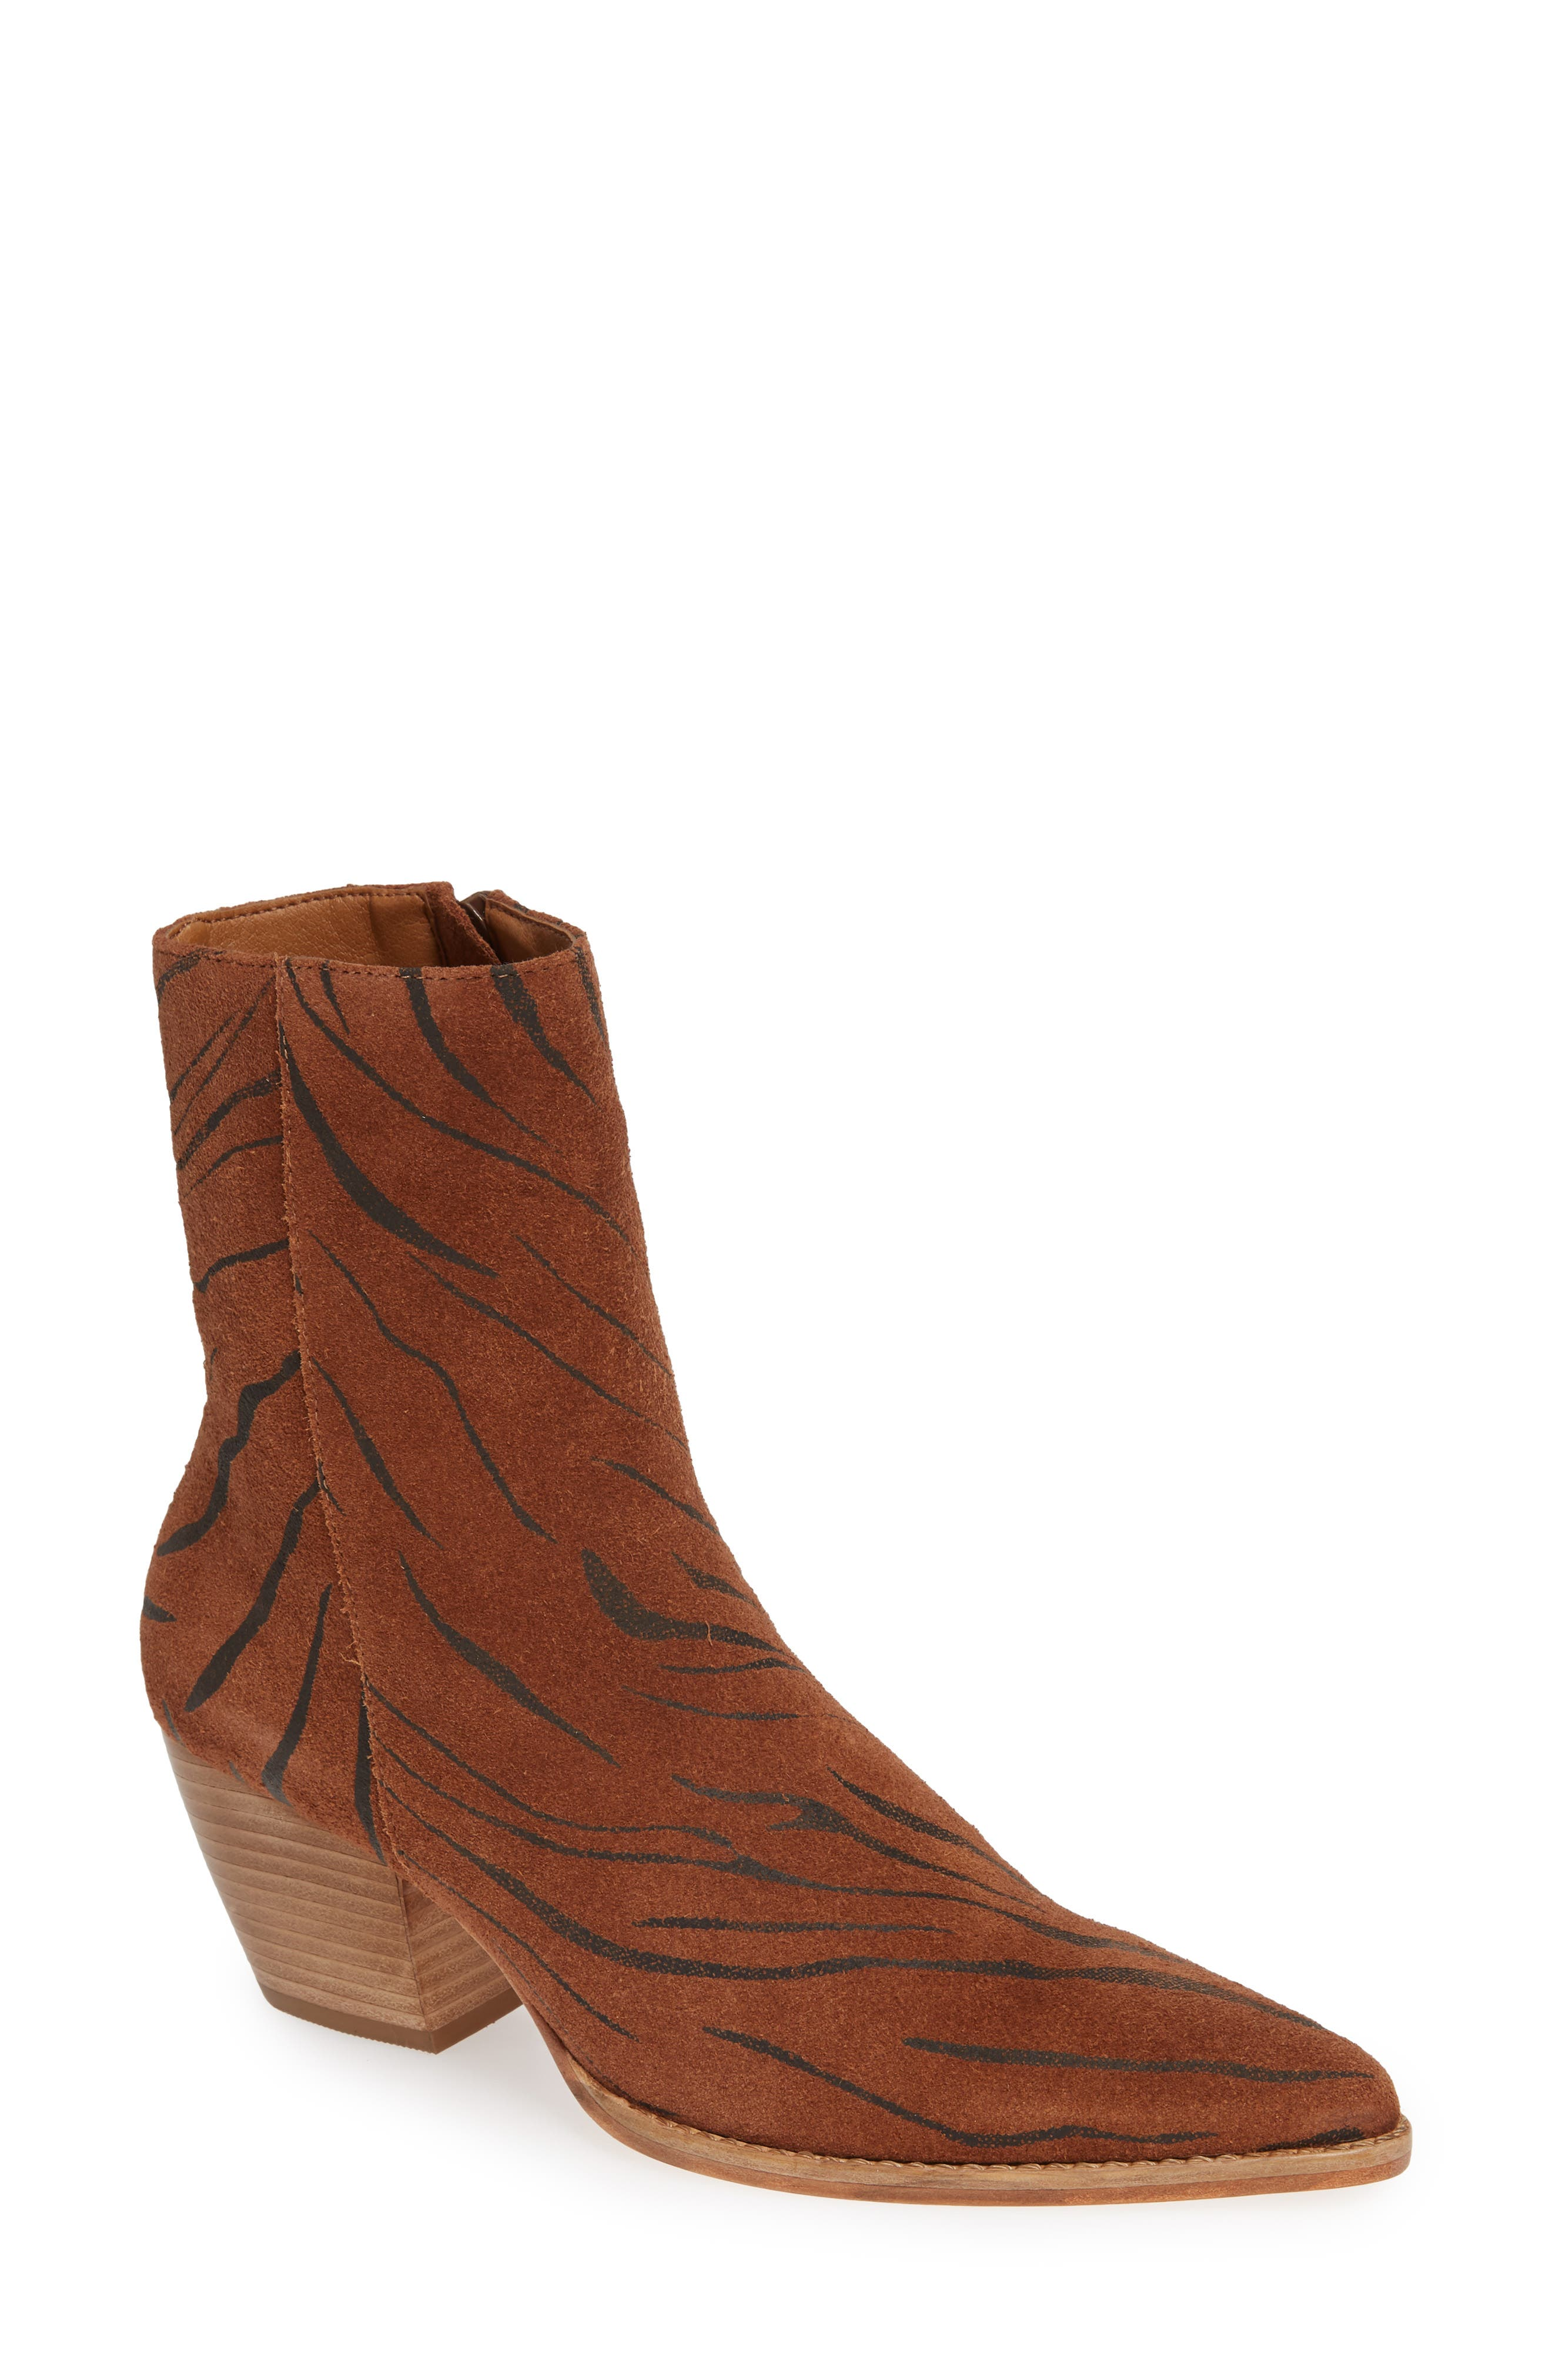 Caty Western Pointy Toe Bootie,                         Main,                         color, TIGER SUEDE